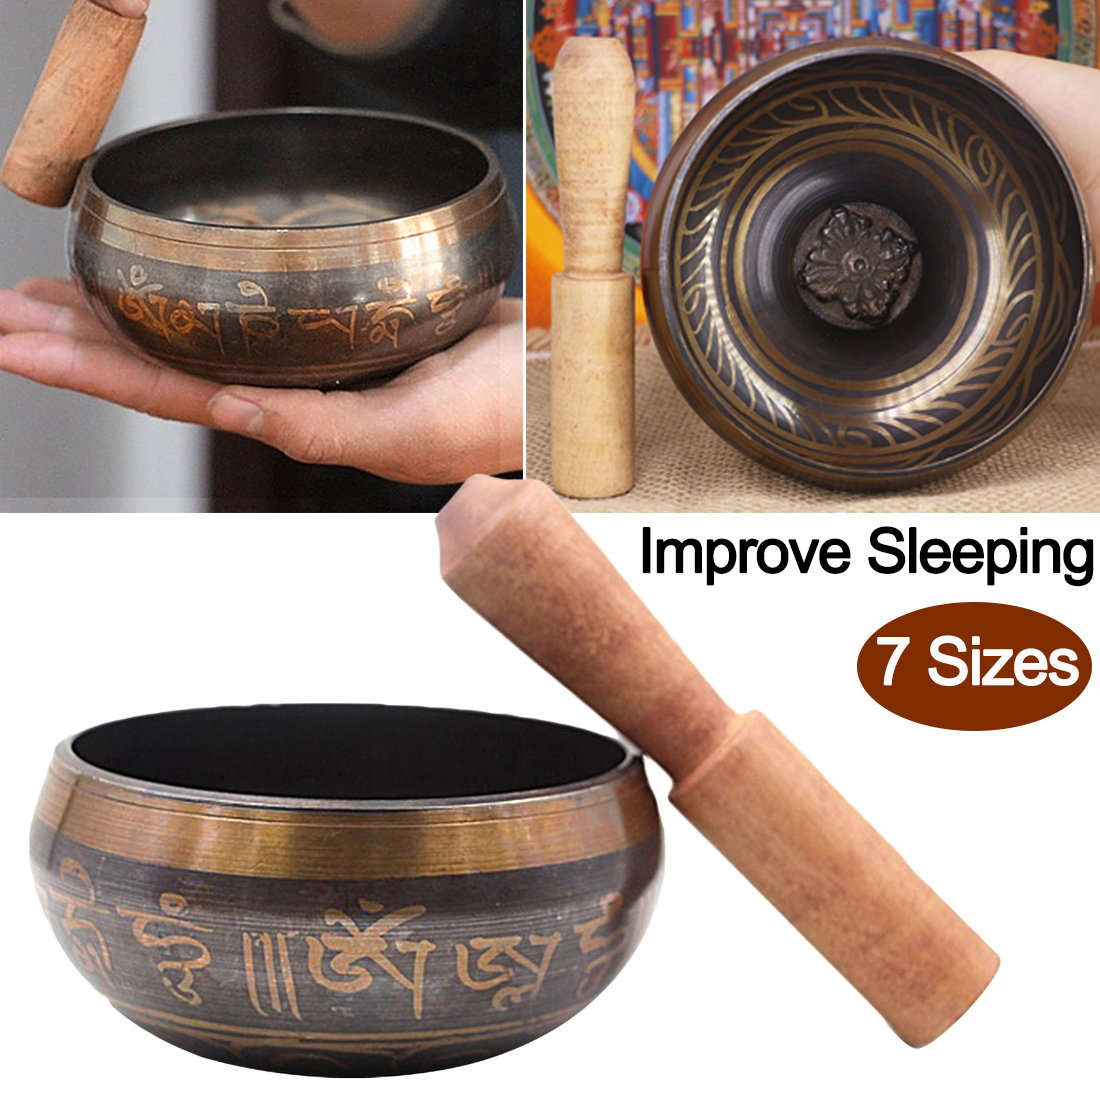 Bowl Copper  Tibetan Buddhism Singing Bowls Handmade Decorative-wall-dishes for Meditation Yoga Buddhism Gifts Home Decor Crafts